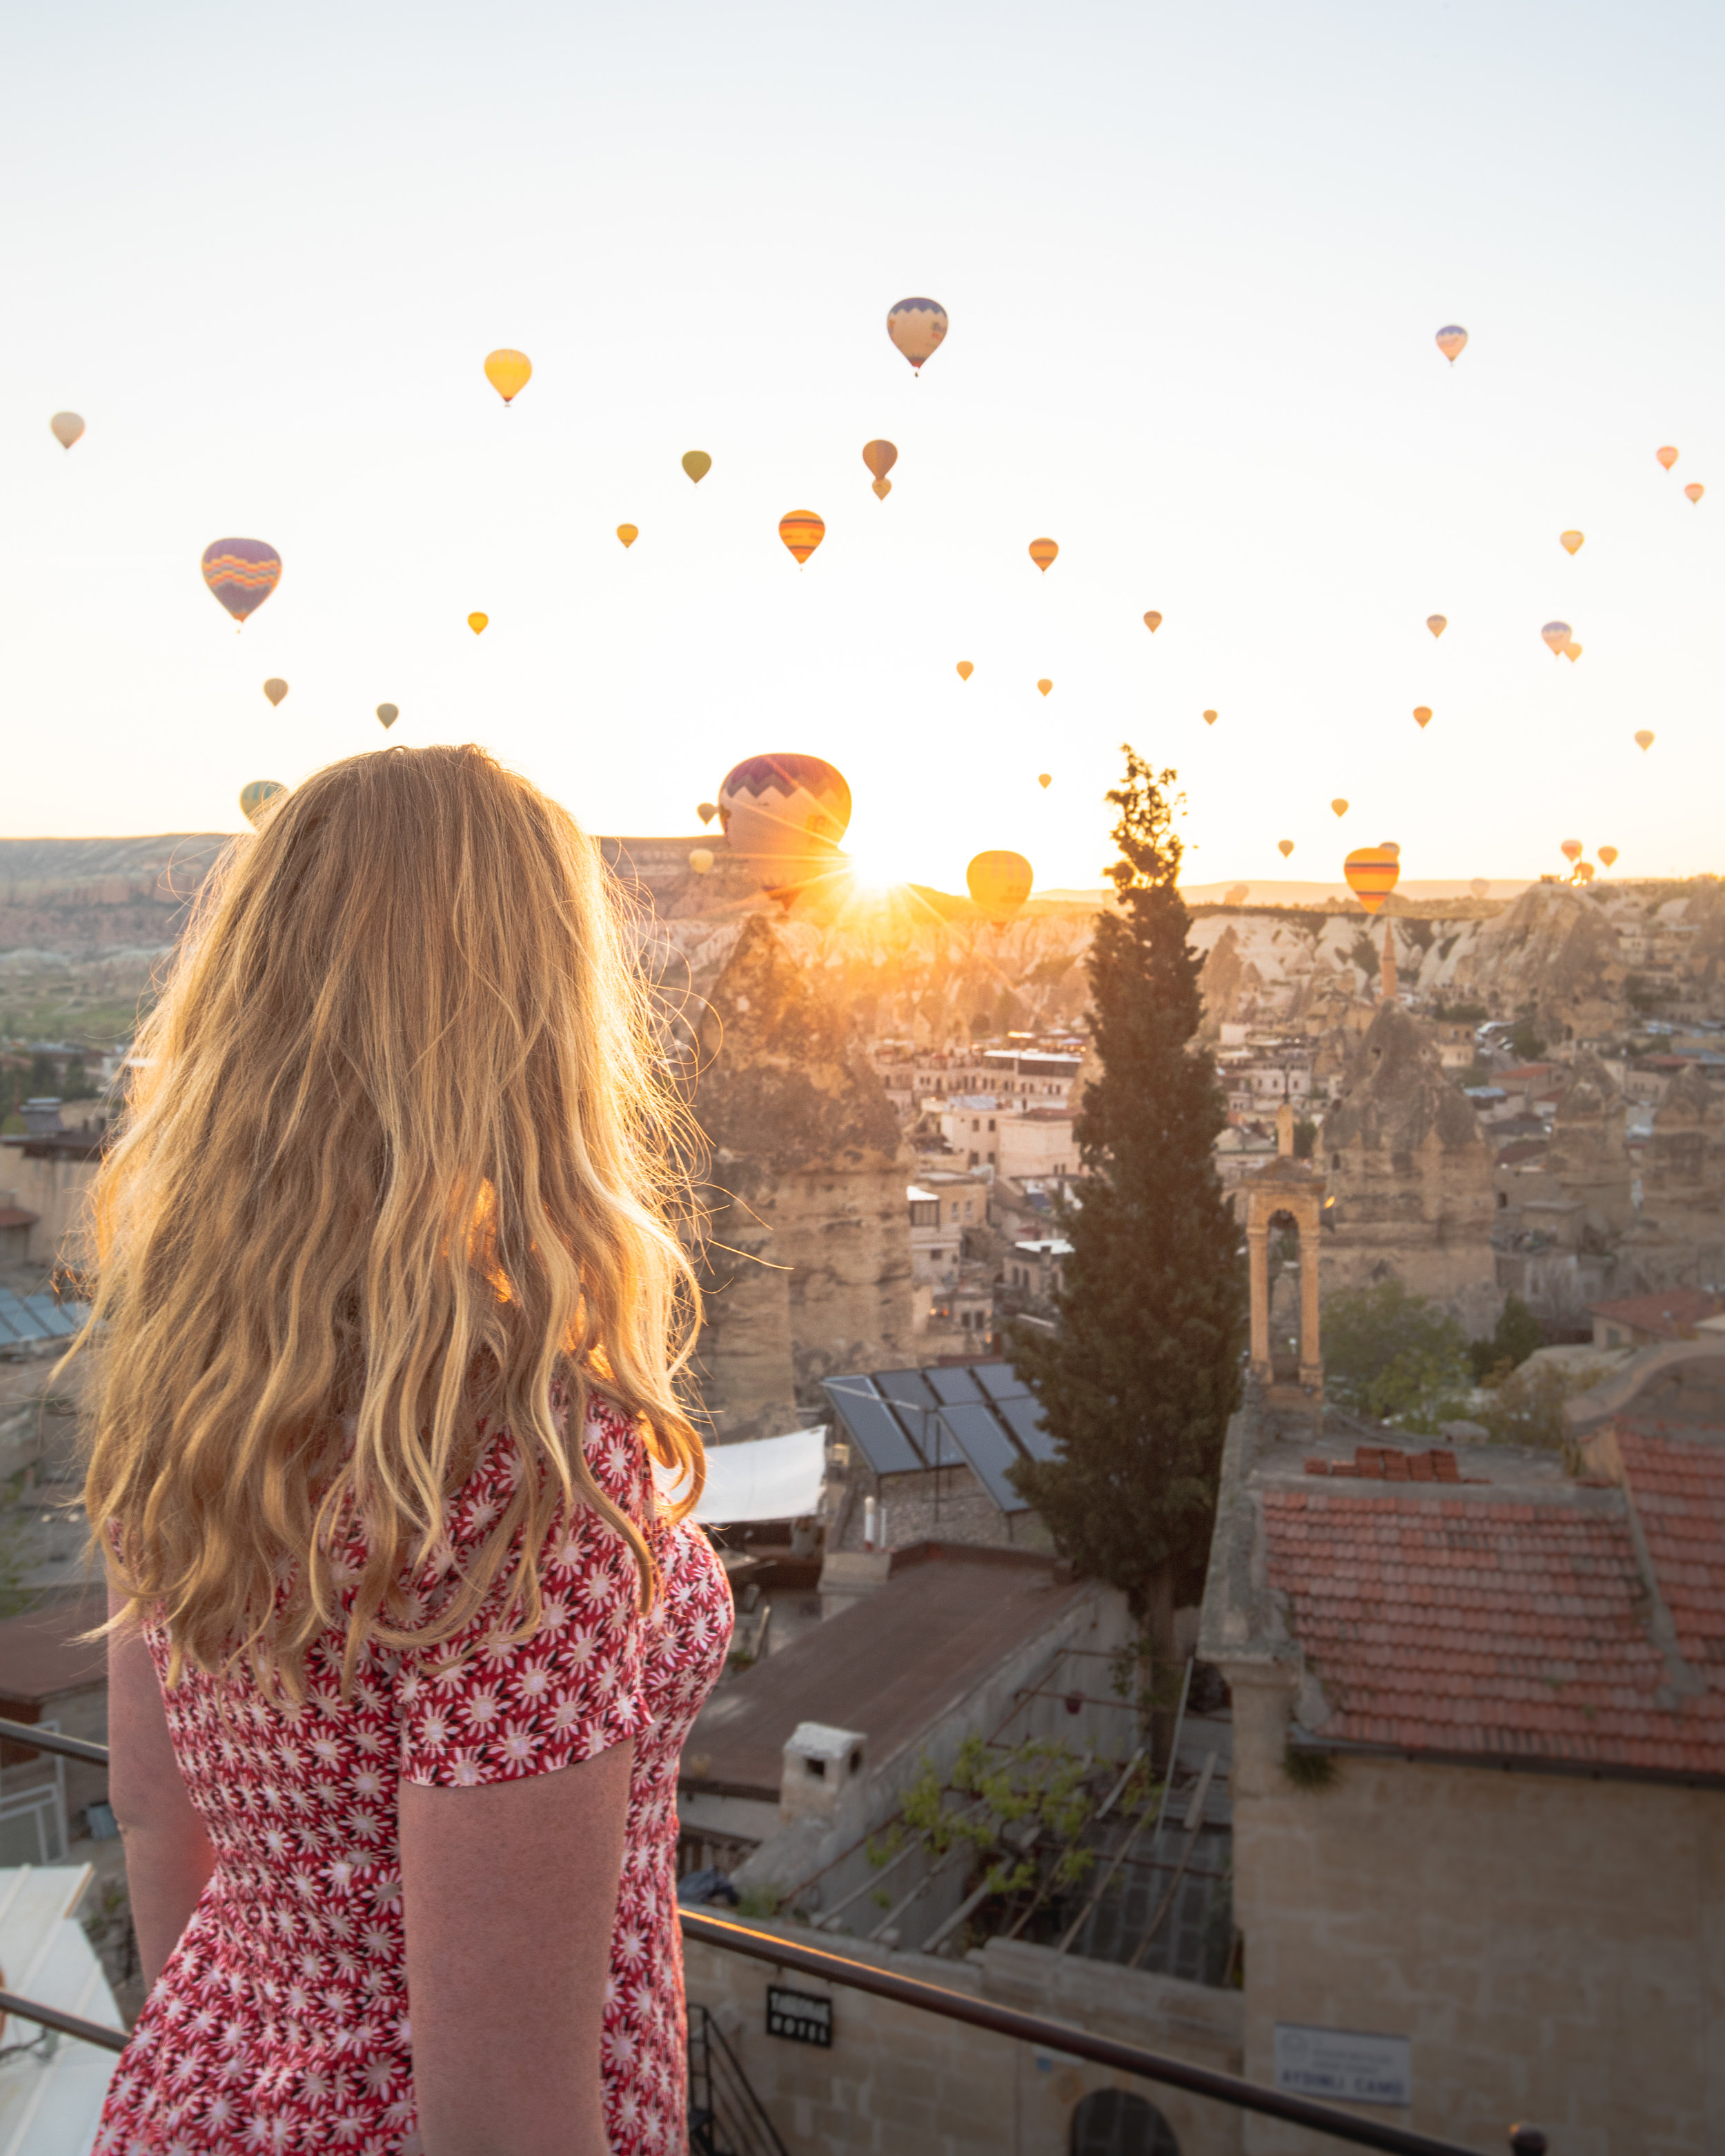 Instagrammable places in Turkey - Cave hotels in Cappadocia